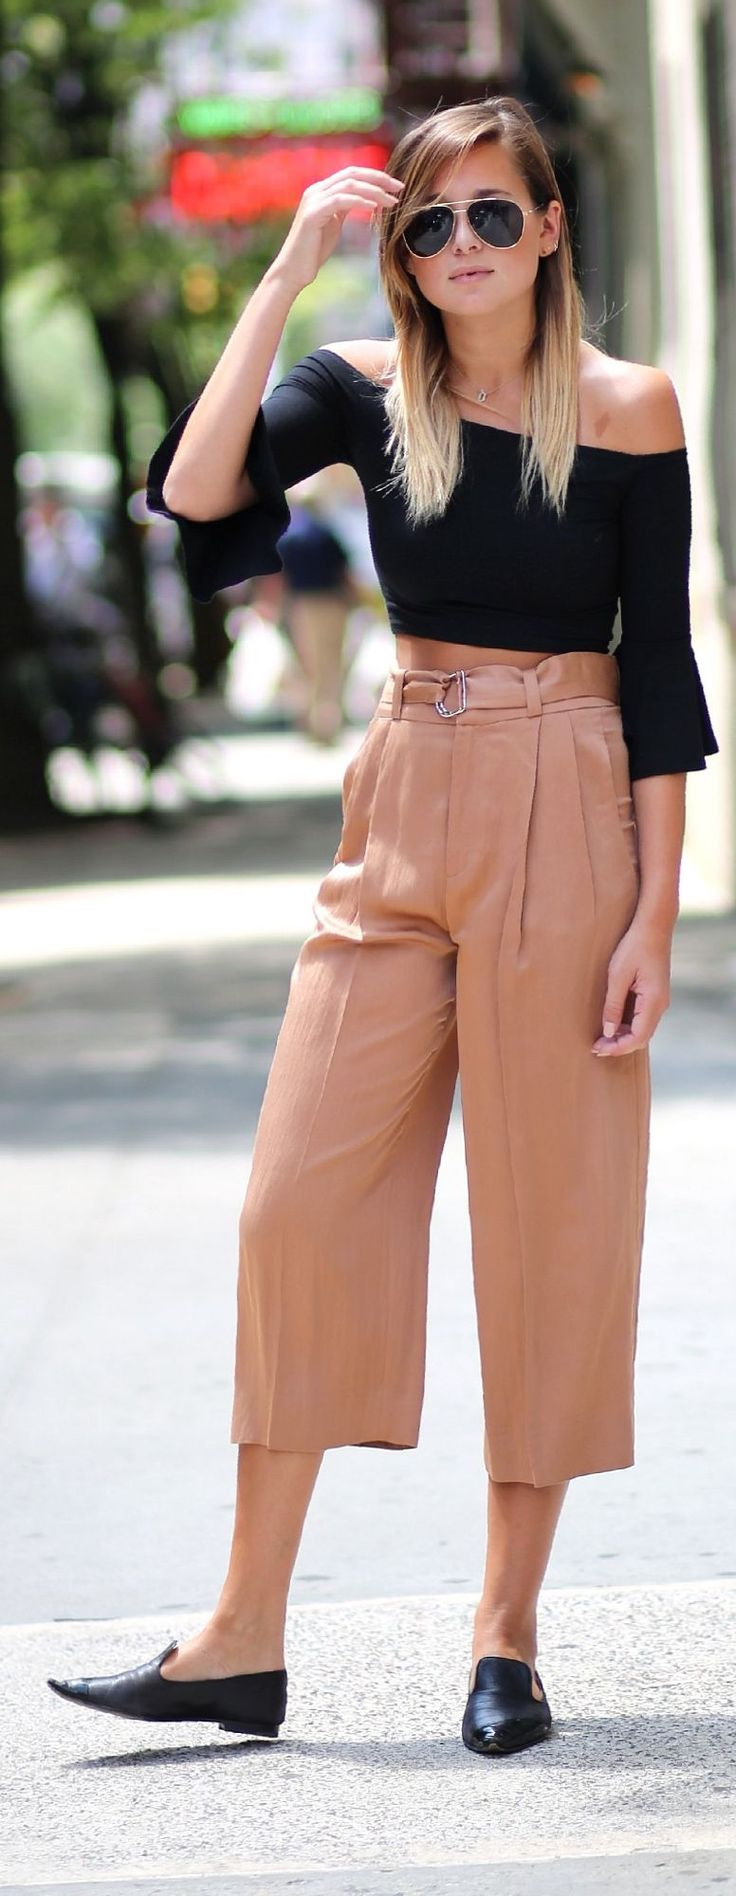 Zara Apricot Belted High Waisted Culotte Pants by We Wore What